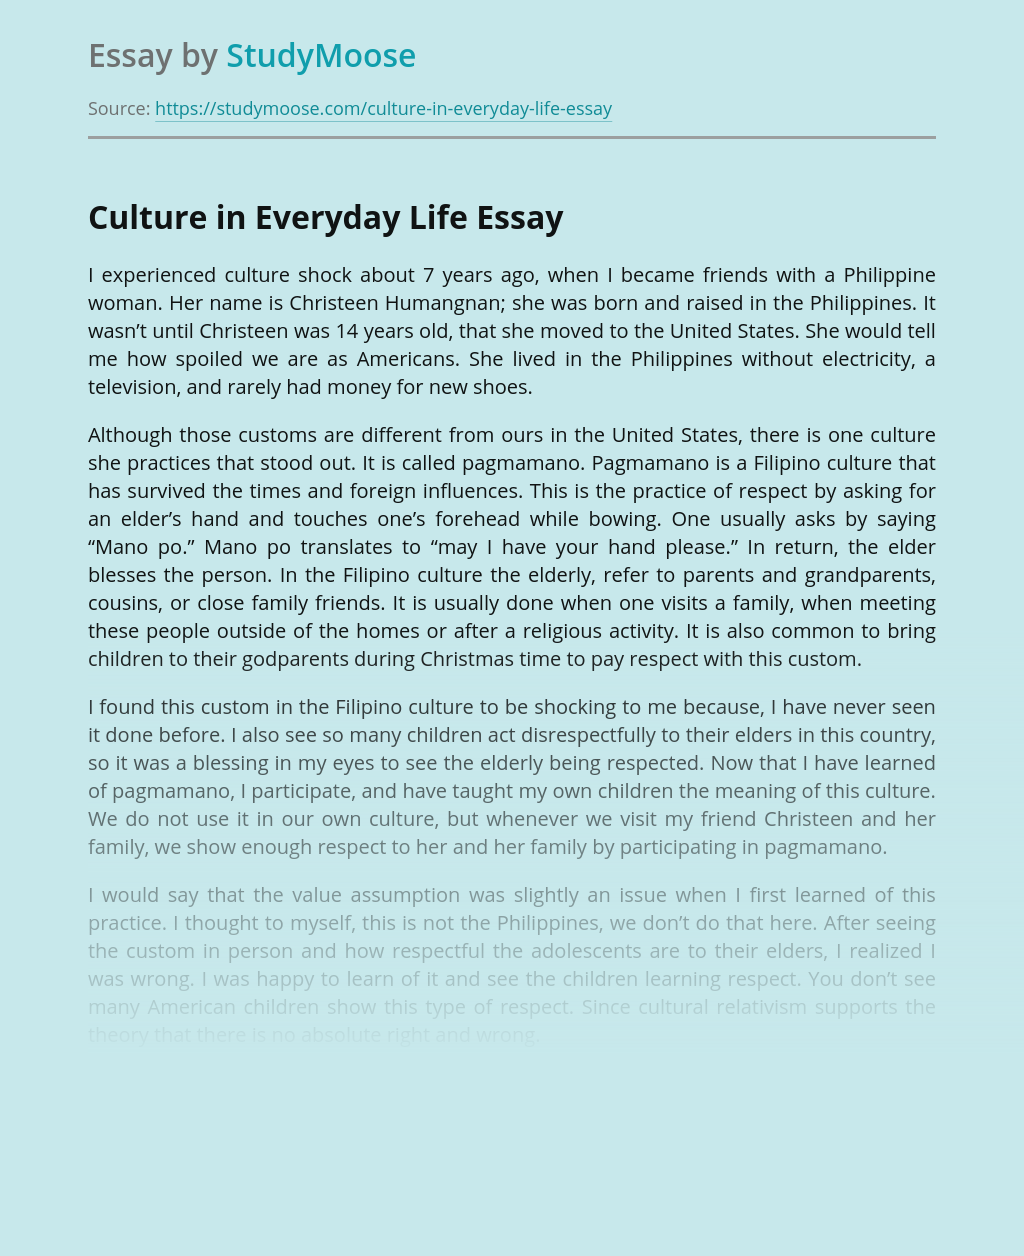 Culture in Everyday Life